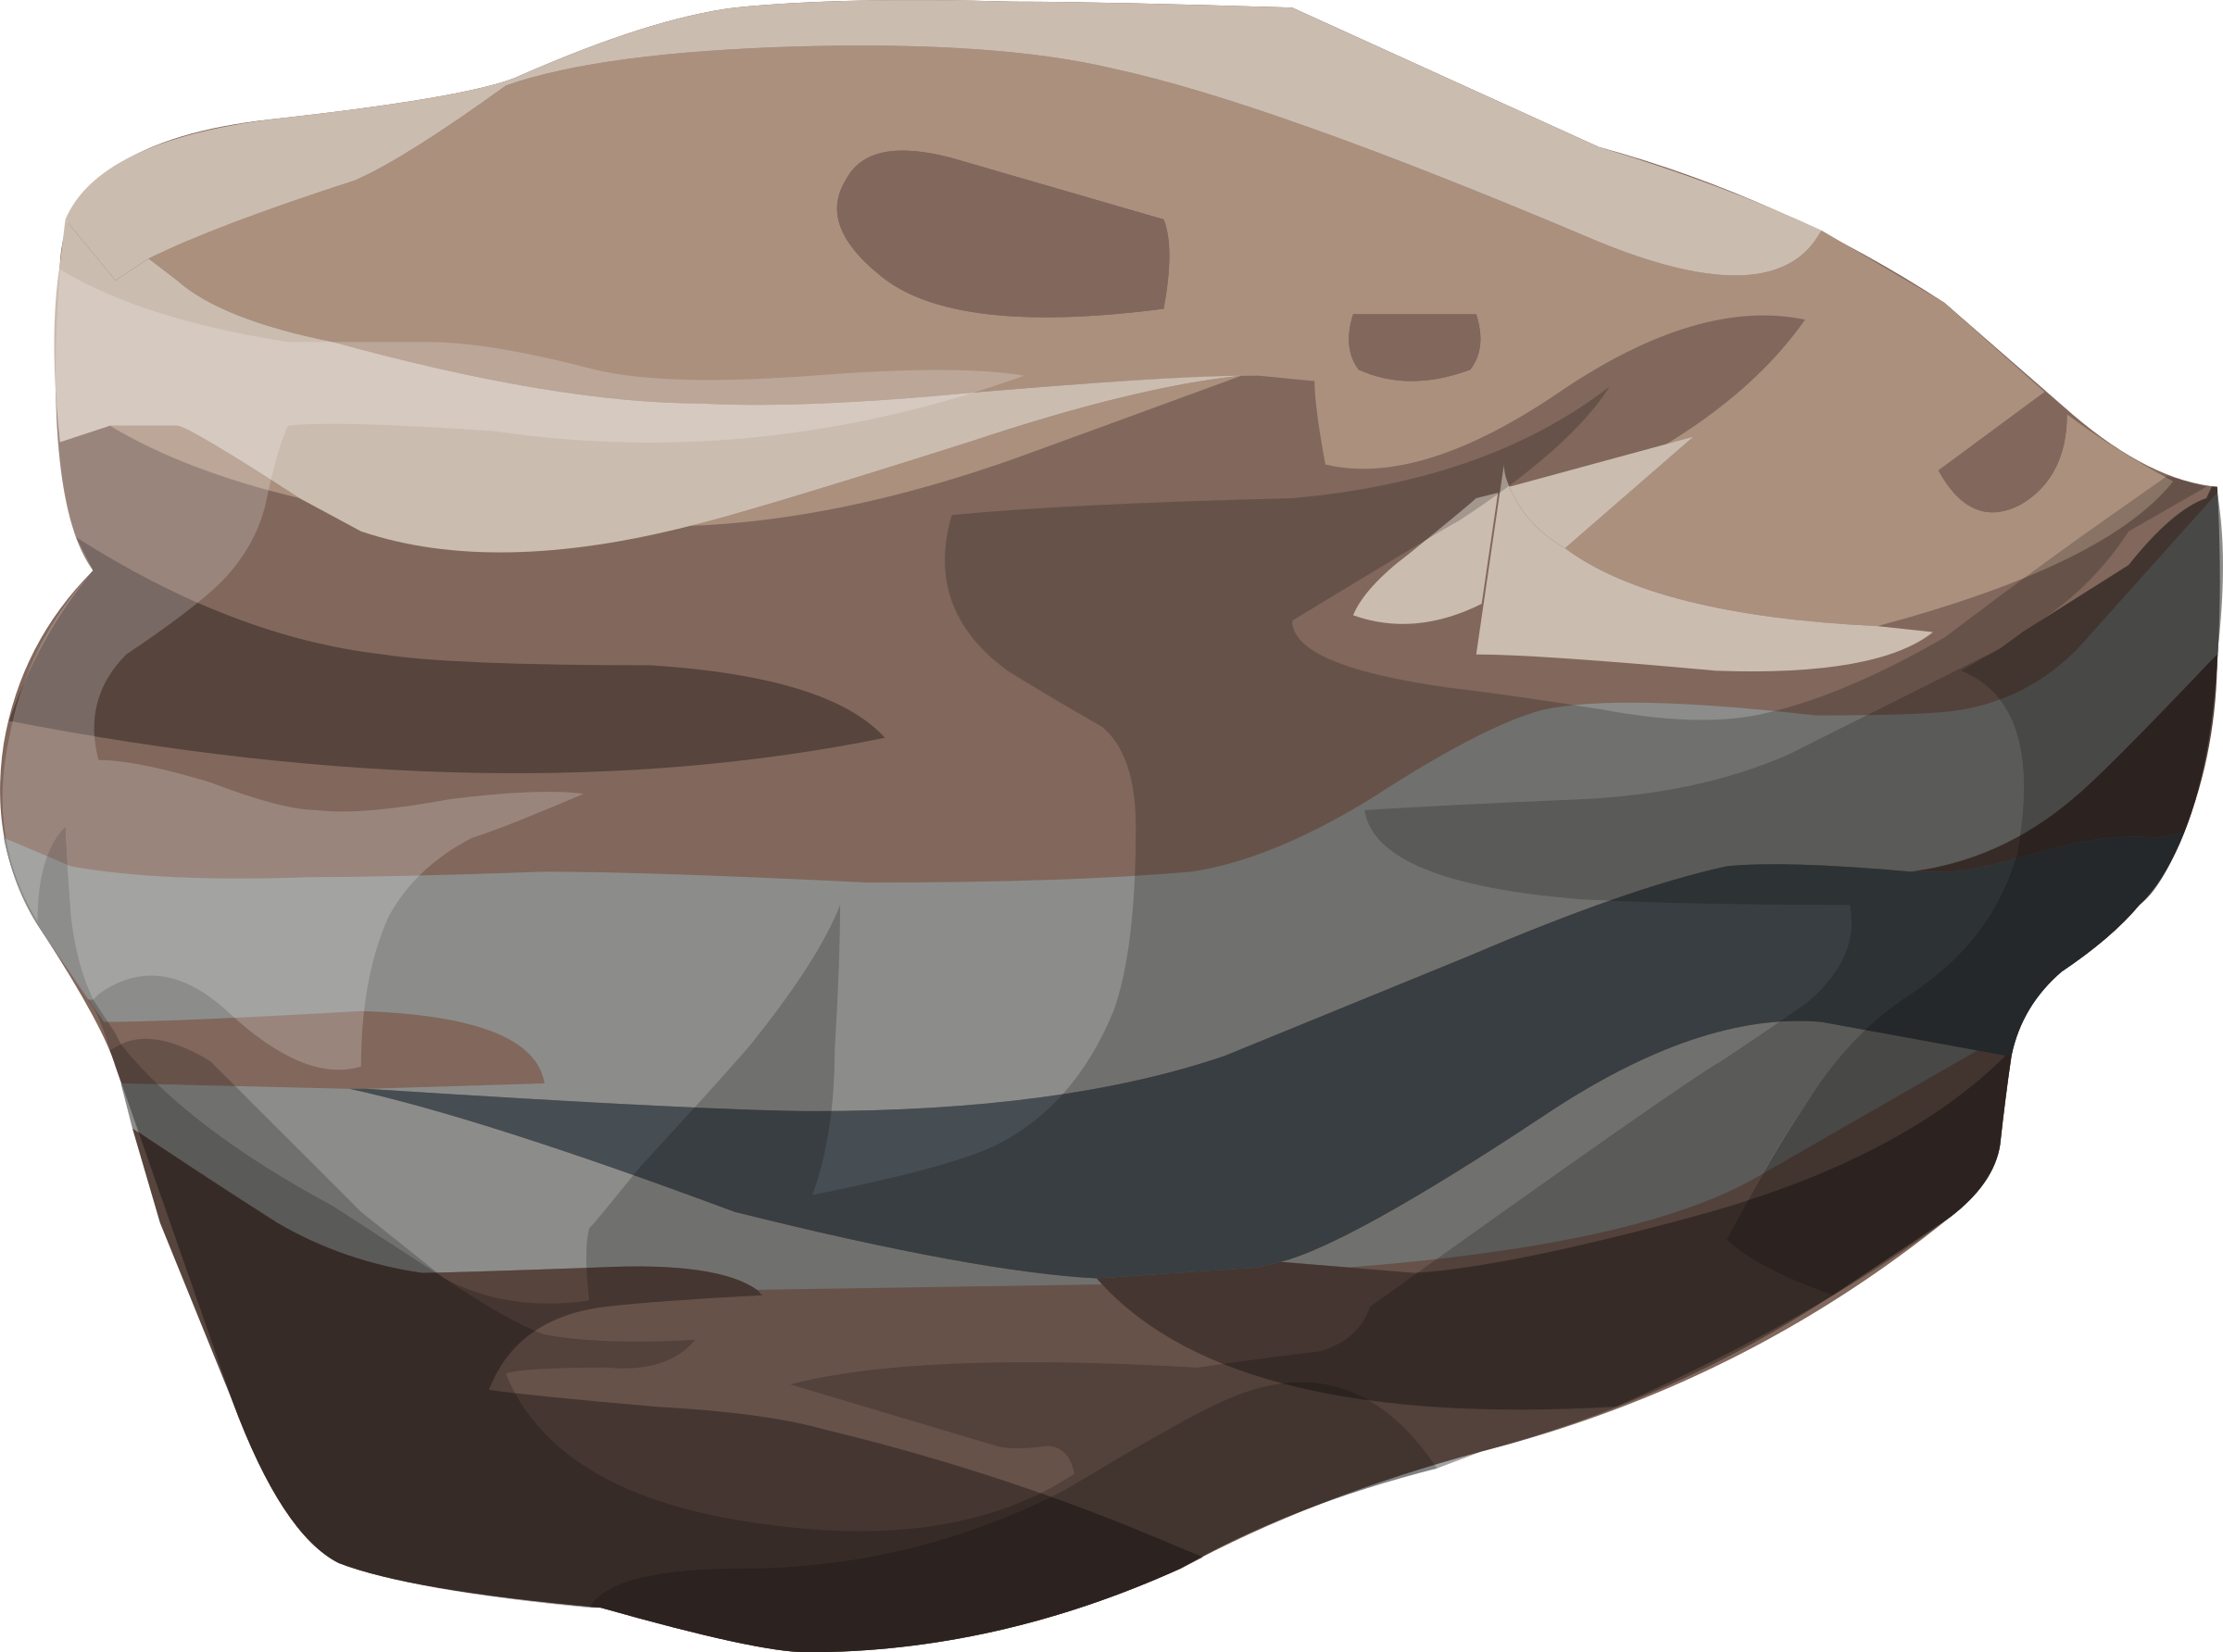 Pebble clipart water Misc petrified rock 50 Rock